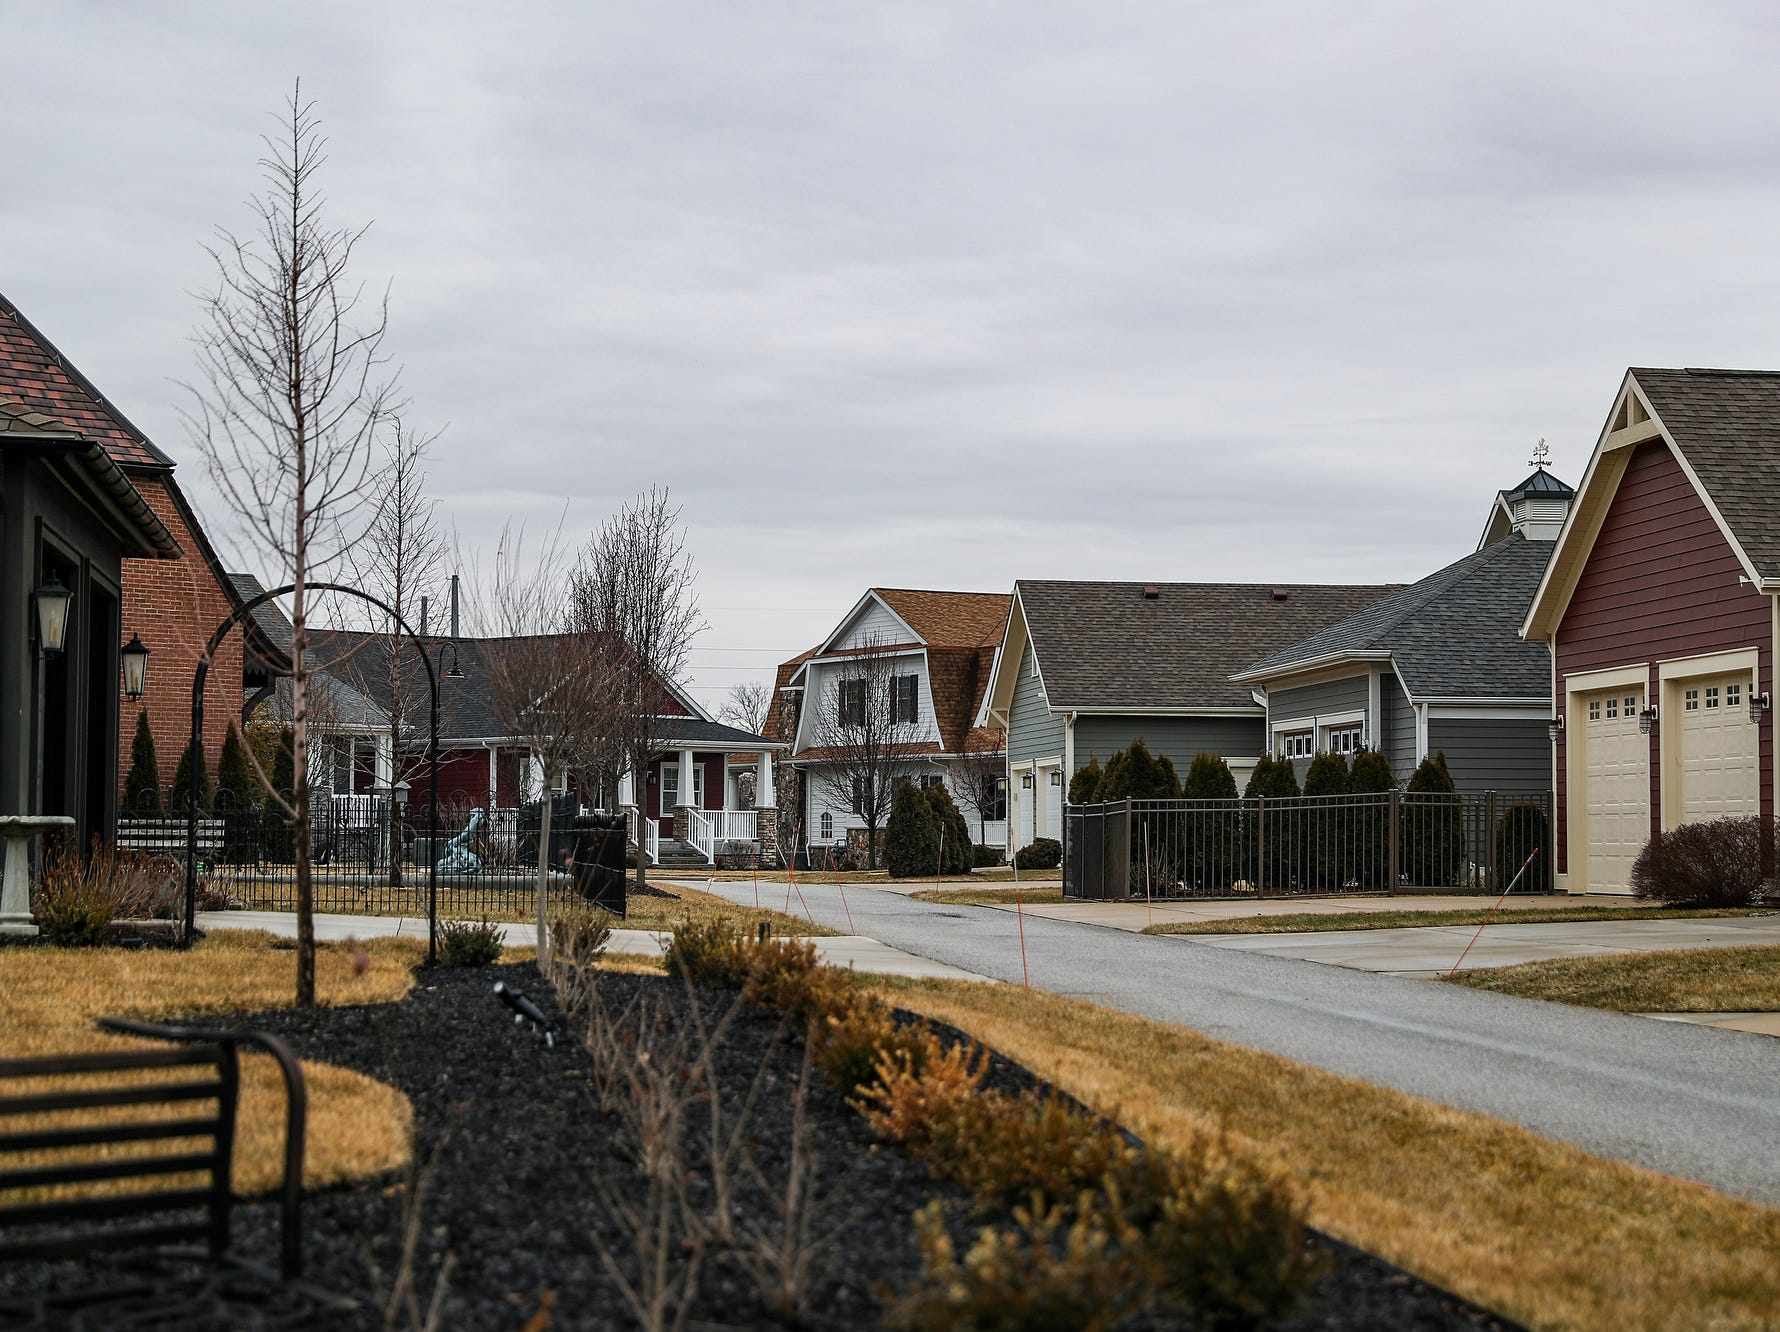 Tightly spaced homes line the streets of The Triangle residential district, a new neighborhood that has sprung up near Notre Dame campus, March 13, 2019. Mayor Pete Buttigieg says $852 million in private investment has been spent on city-incentivized deals since he's been in office. New houses and commercial development are quickly on the rise near the university.